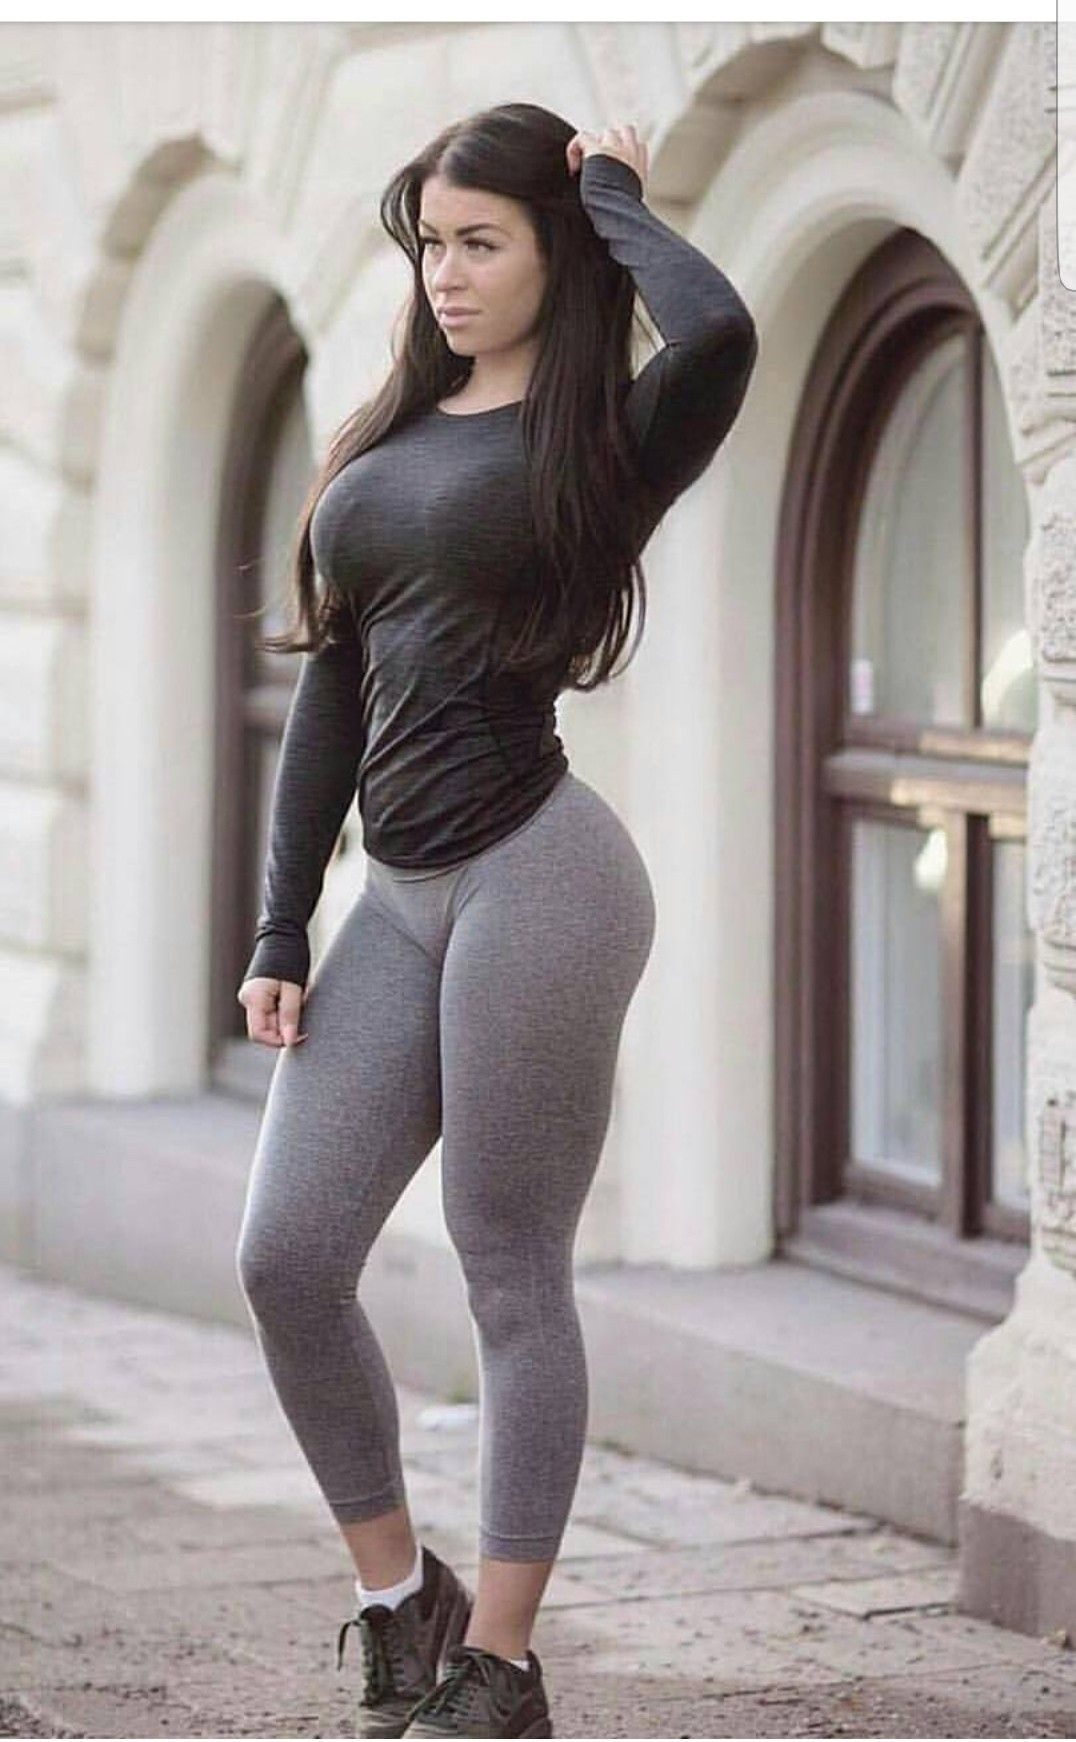 There's nothing beautiful girls naked in yoga pants